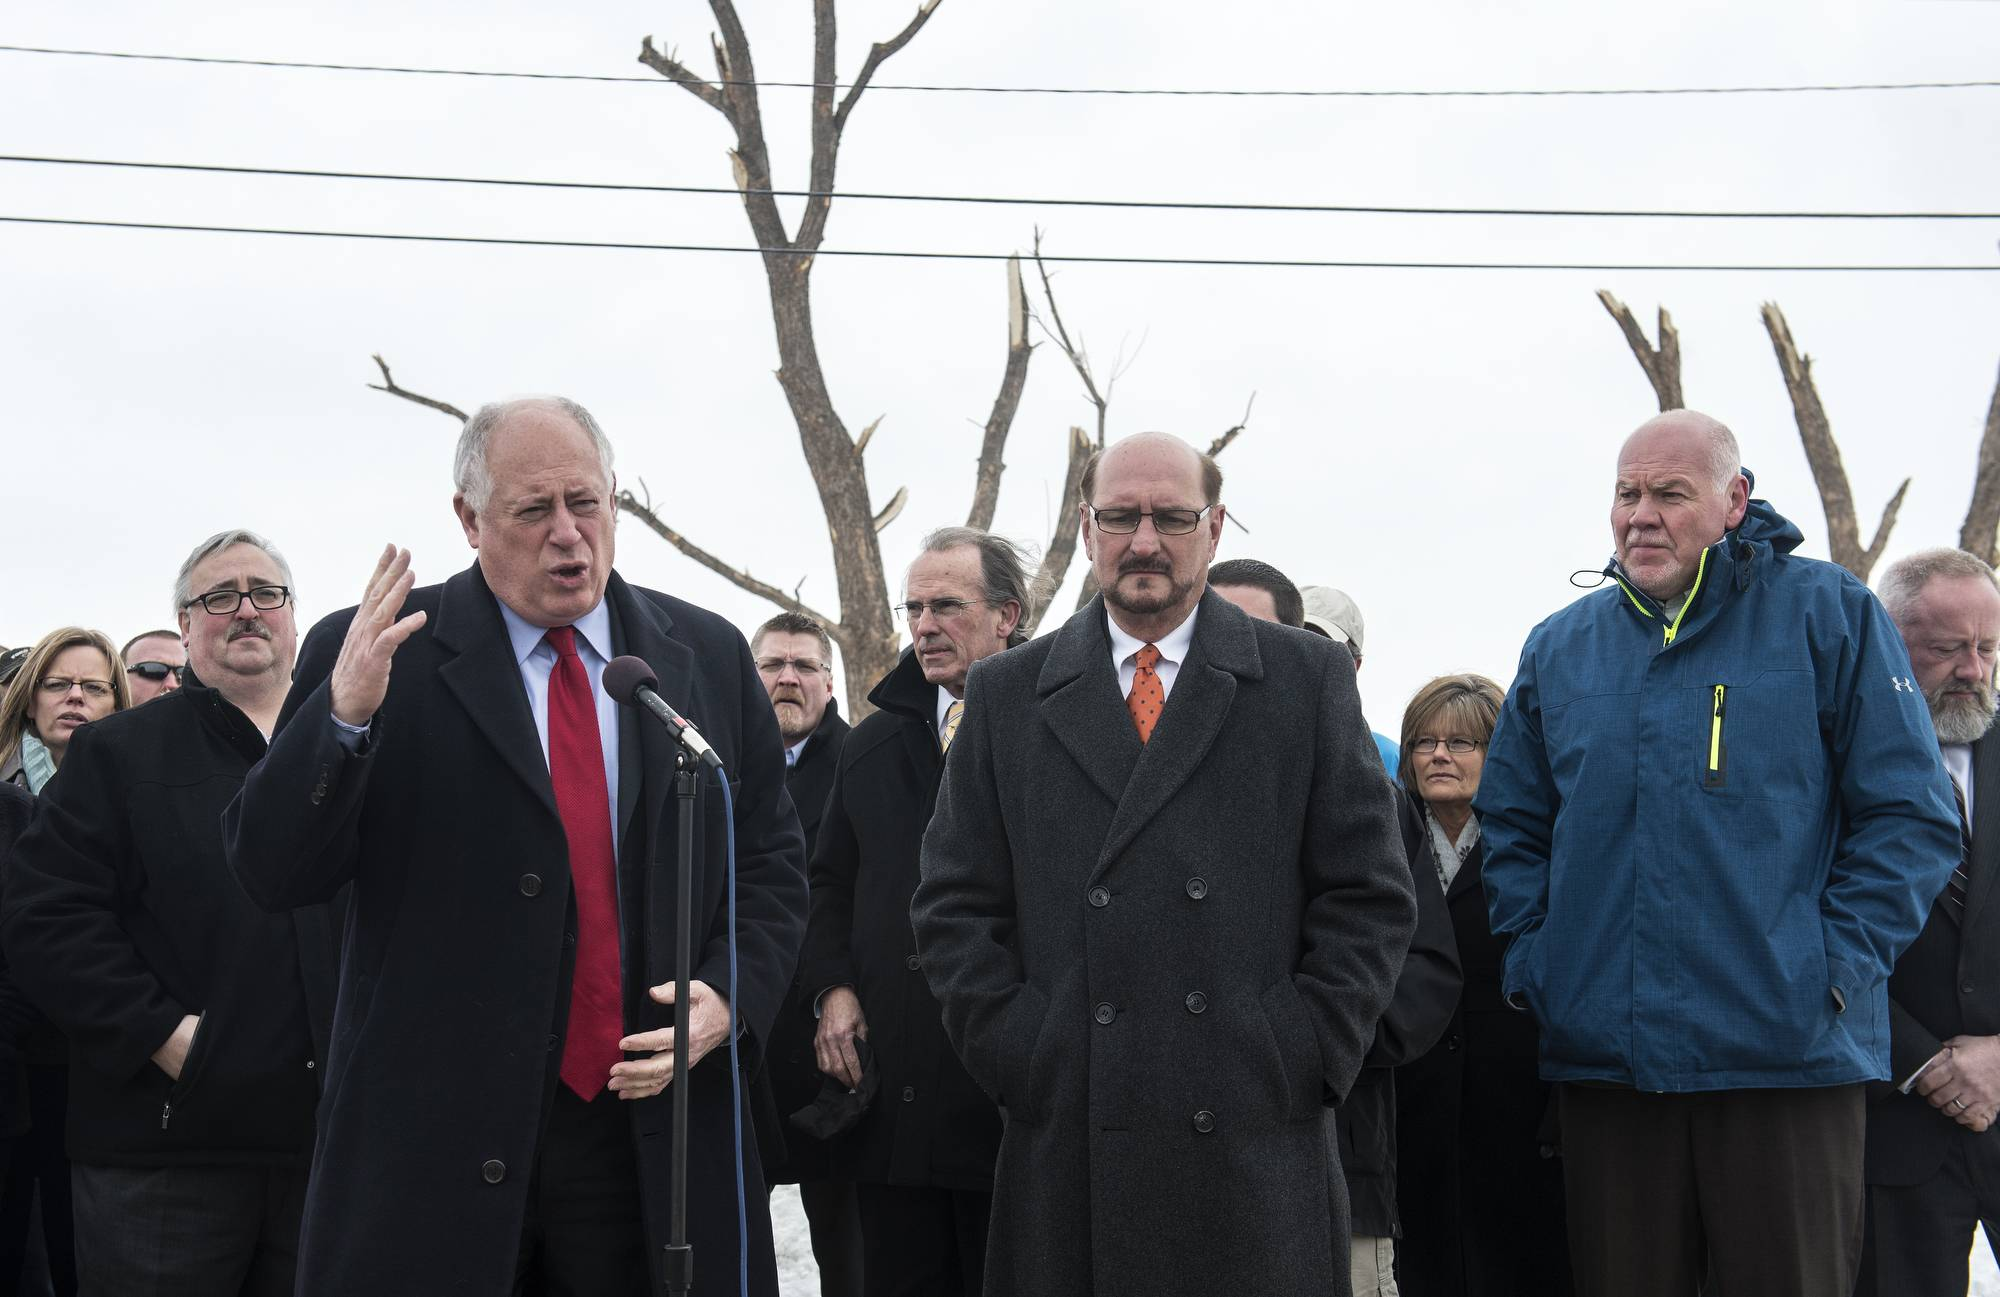 Gov. Pat Quinn, left, announces $45 million in Illinois-funded relief for local governments recovering from the deadly November tornadoes during a news conference Wednesday outside of Tractor Supply Co. in downstate Washington. Joining the governor were Washington Mayor Gary Manier, center, and East Peoria Mayor Dave Mingus.